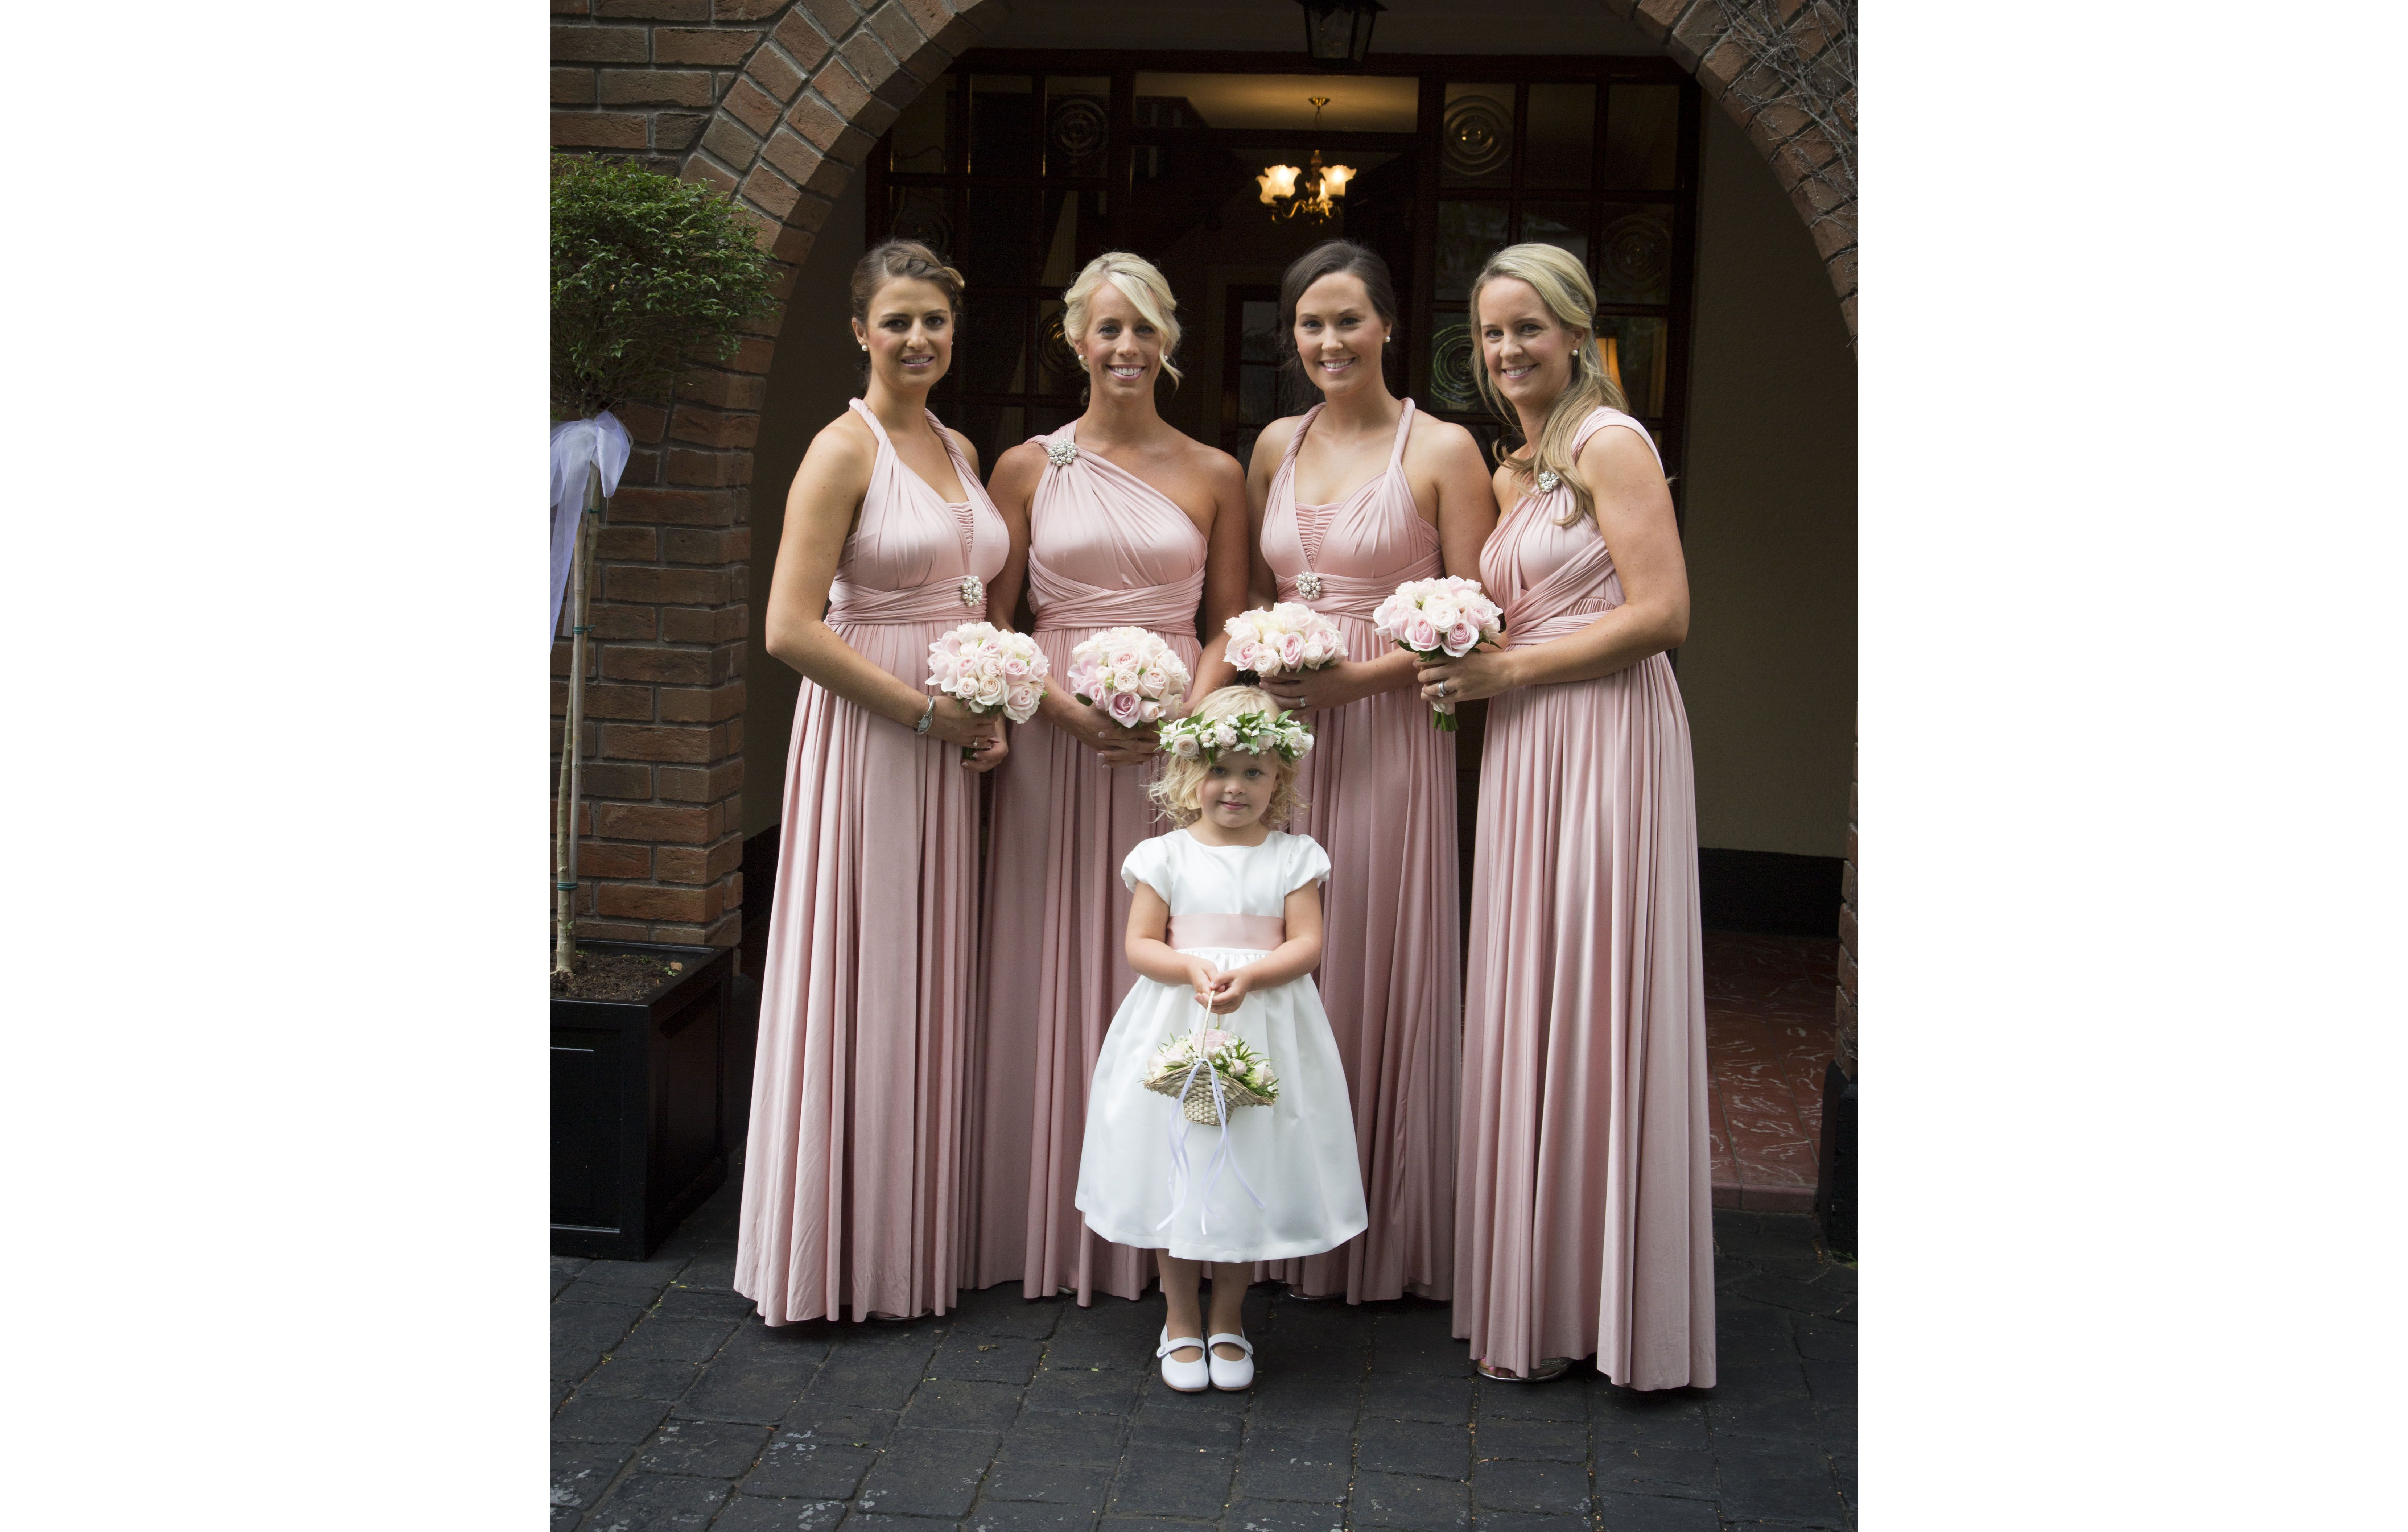 Eliza and ethan multiway infinity bridesmaids dresses eliza and ethan multiway infinity bridesmaids dresses onesize long multiwrap dress ombrellifo Images